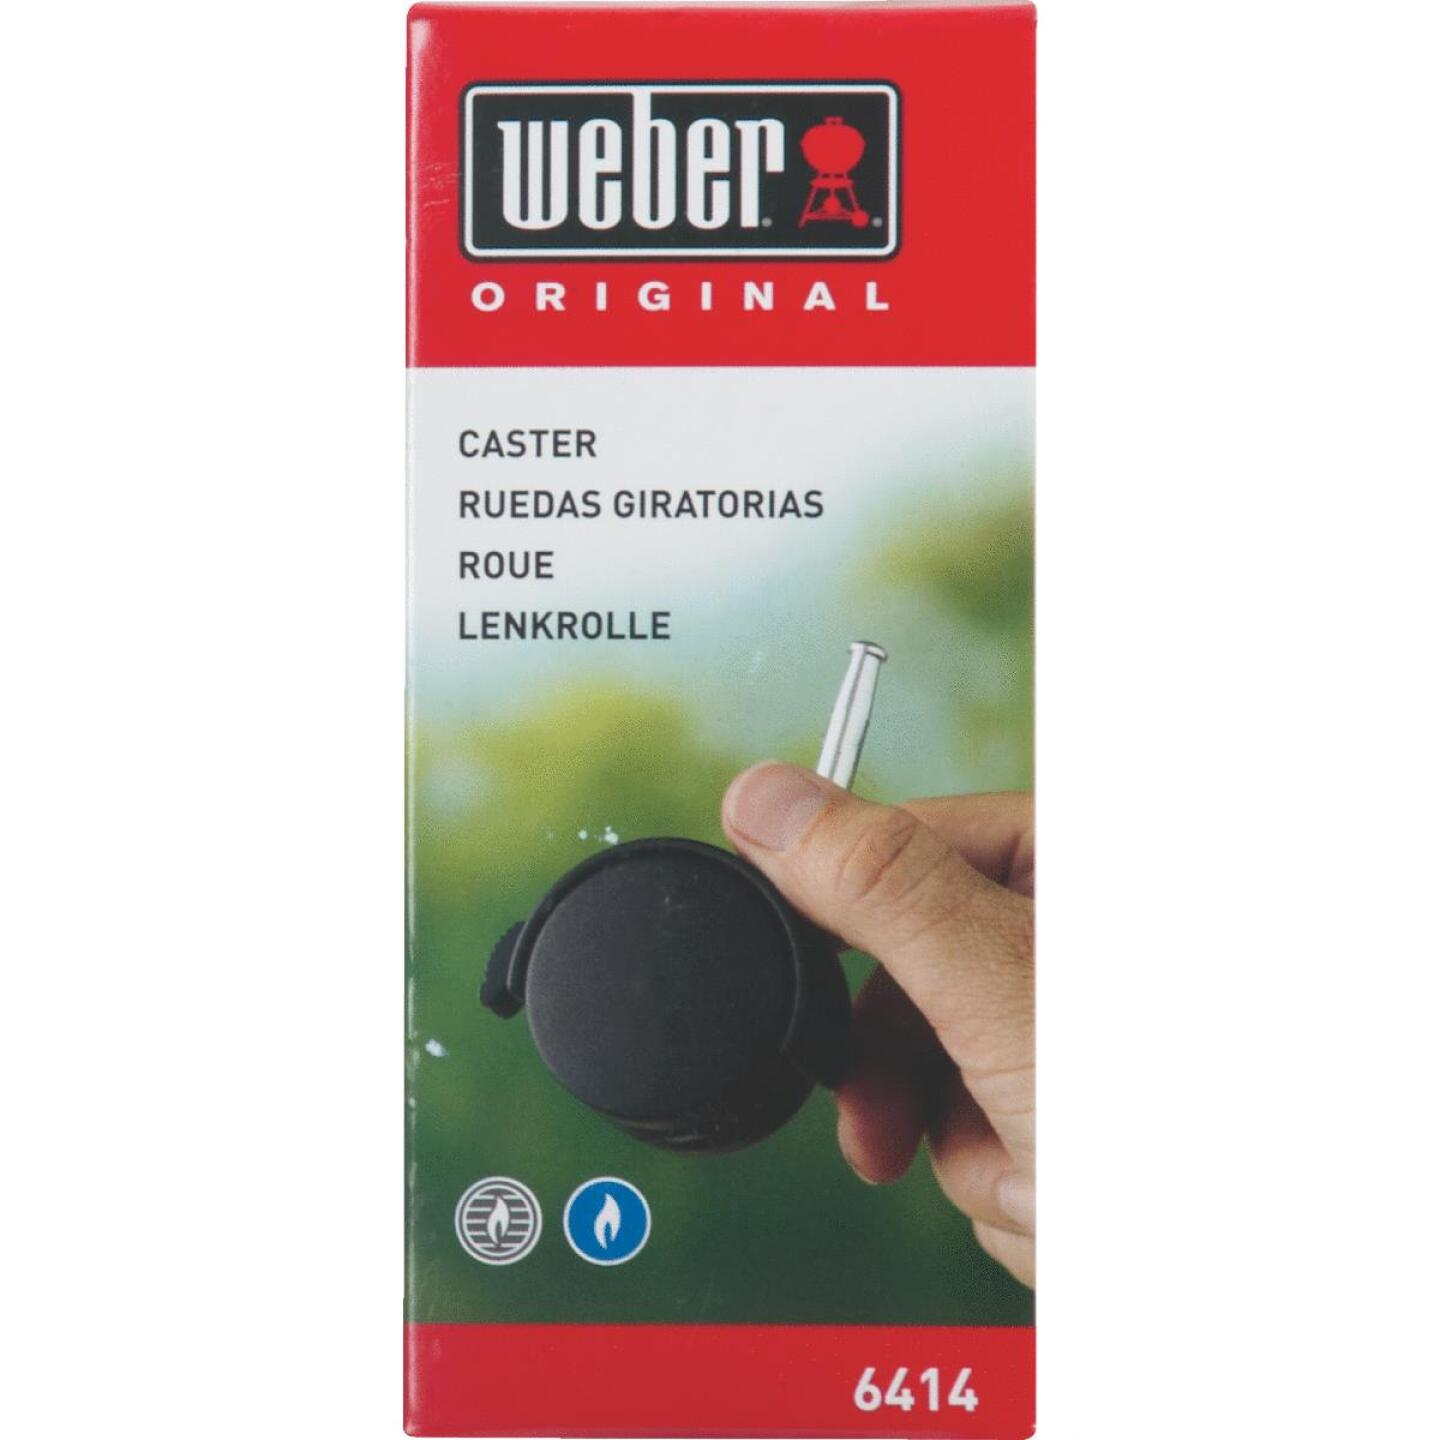 Weber Black Plastic Grill Replacement Caster & Insert Image 1